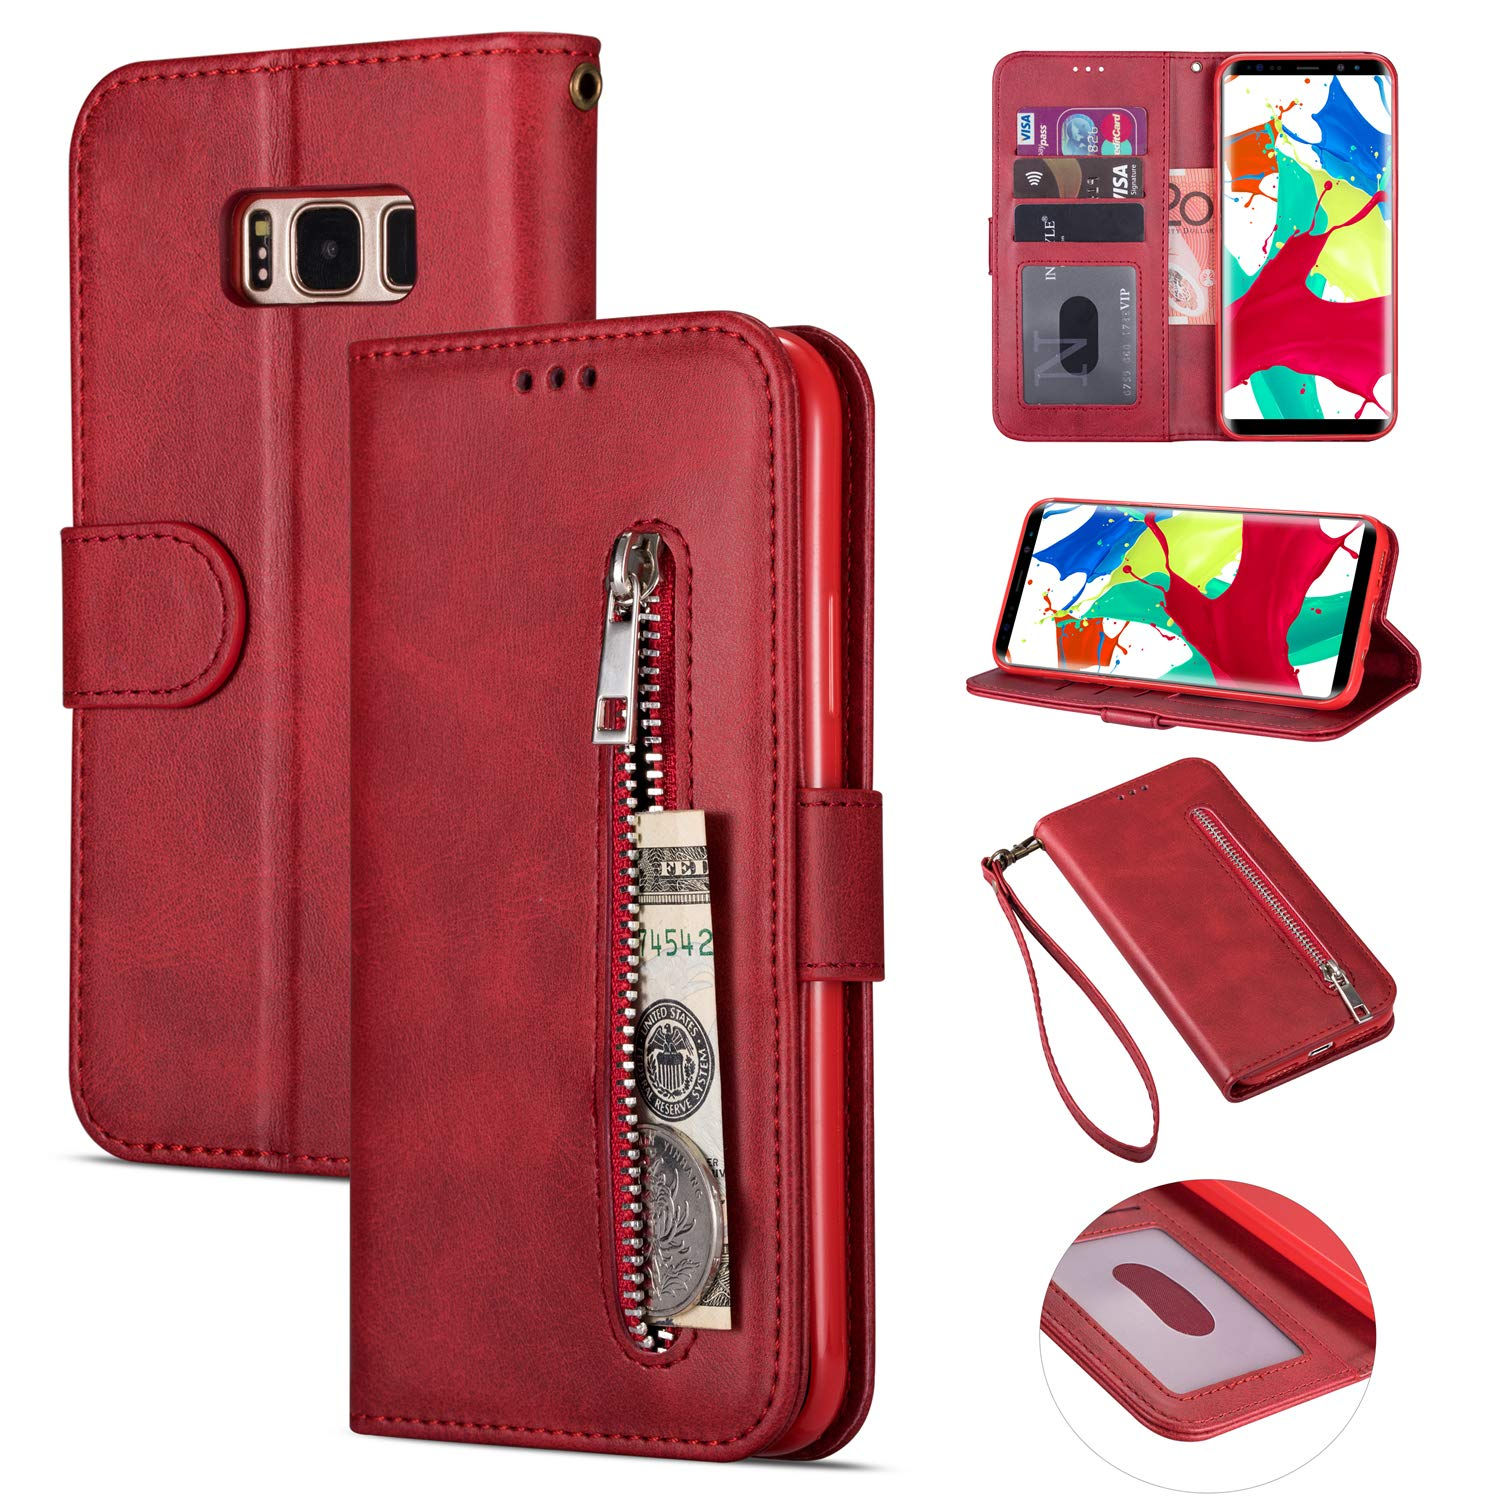 Zipper Wallet Case with Black Dual-use Pen for Samsung Galaxy S8 Plus,Aoucase Money Coin Pocket Card Holder Shock Resistant Strap Purse PU Leather Case for Samsung Galaxy S8 Plus - Red by Aoucase